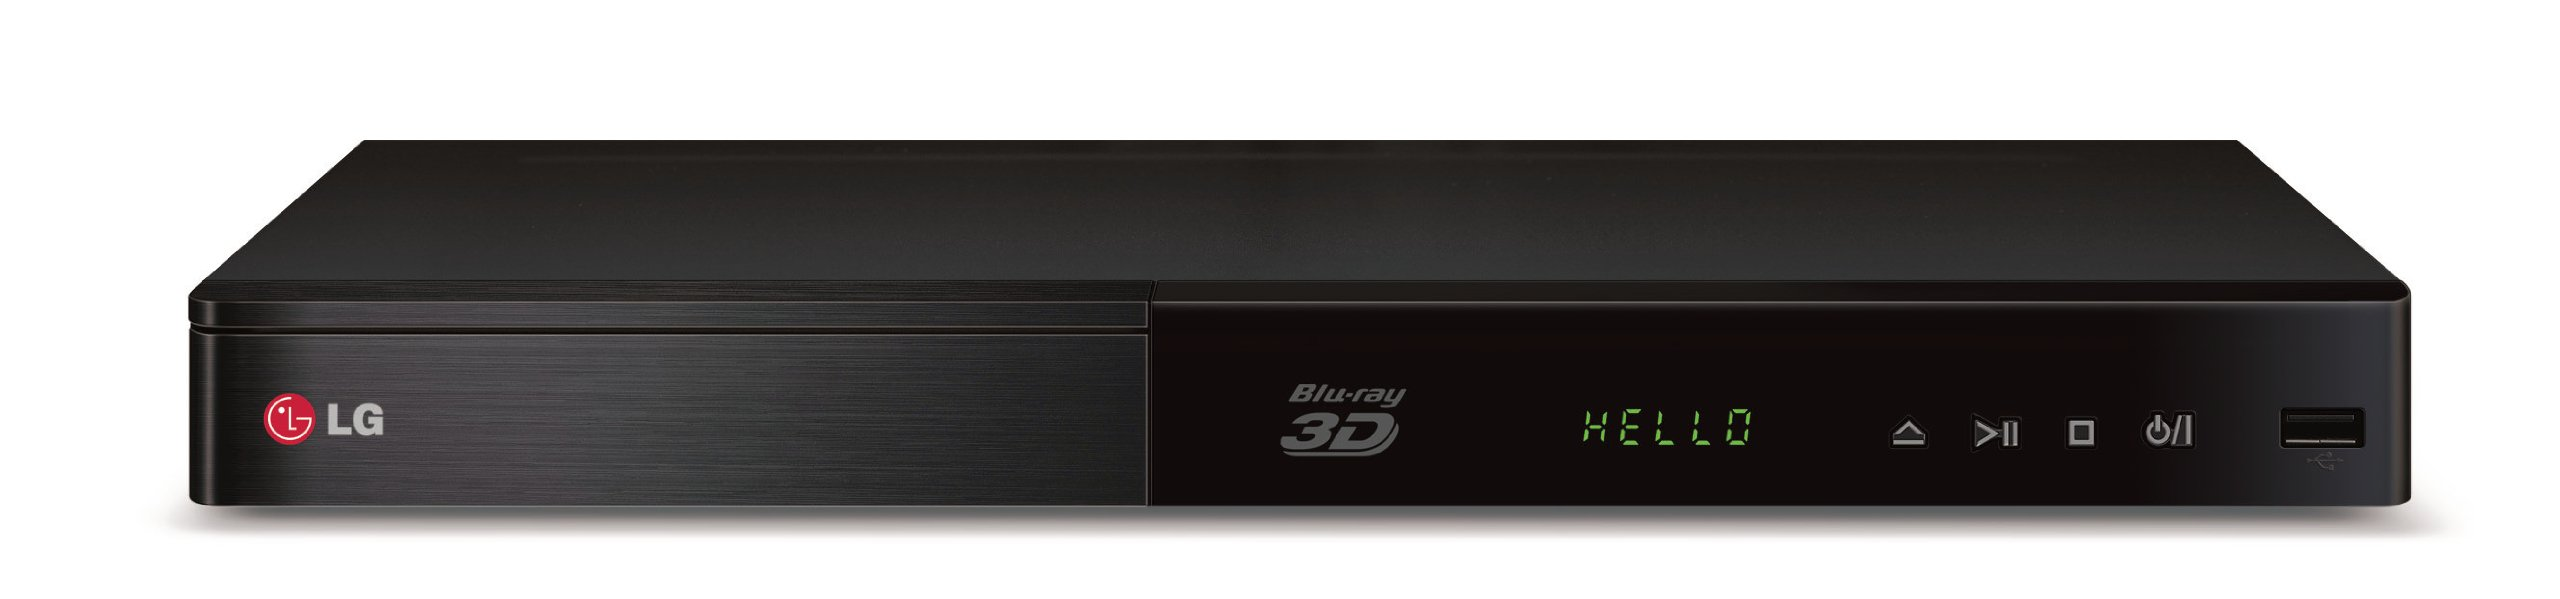 LG Electronics BP540 3D Blu-Ray Disc Player with Smart TV and Built-In Wi-Fi (2014 Model)